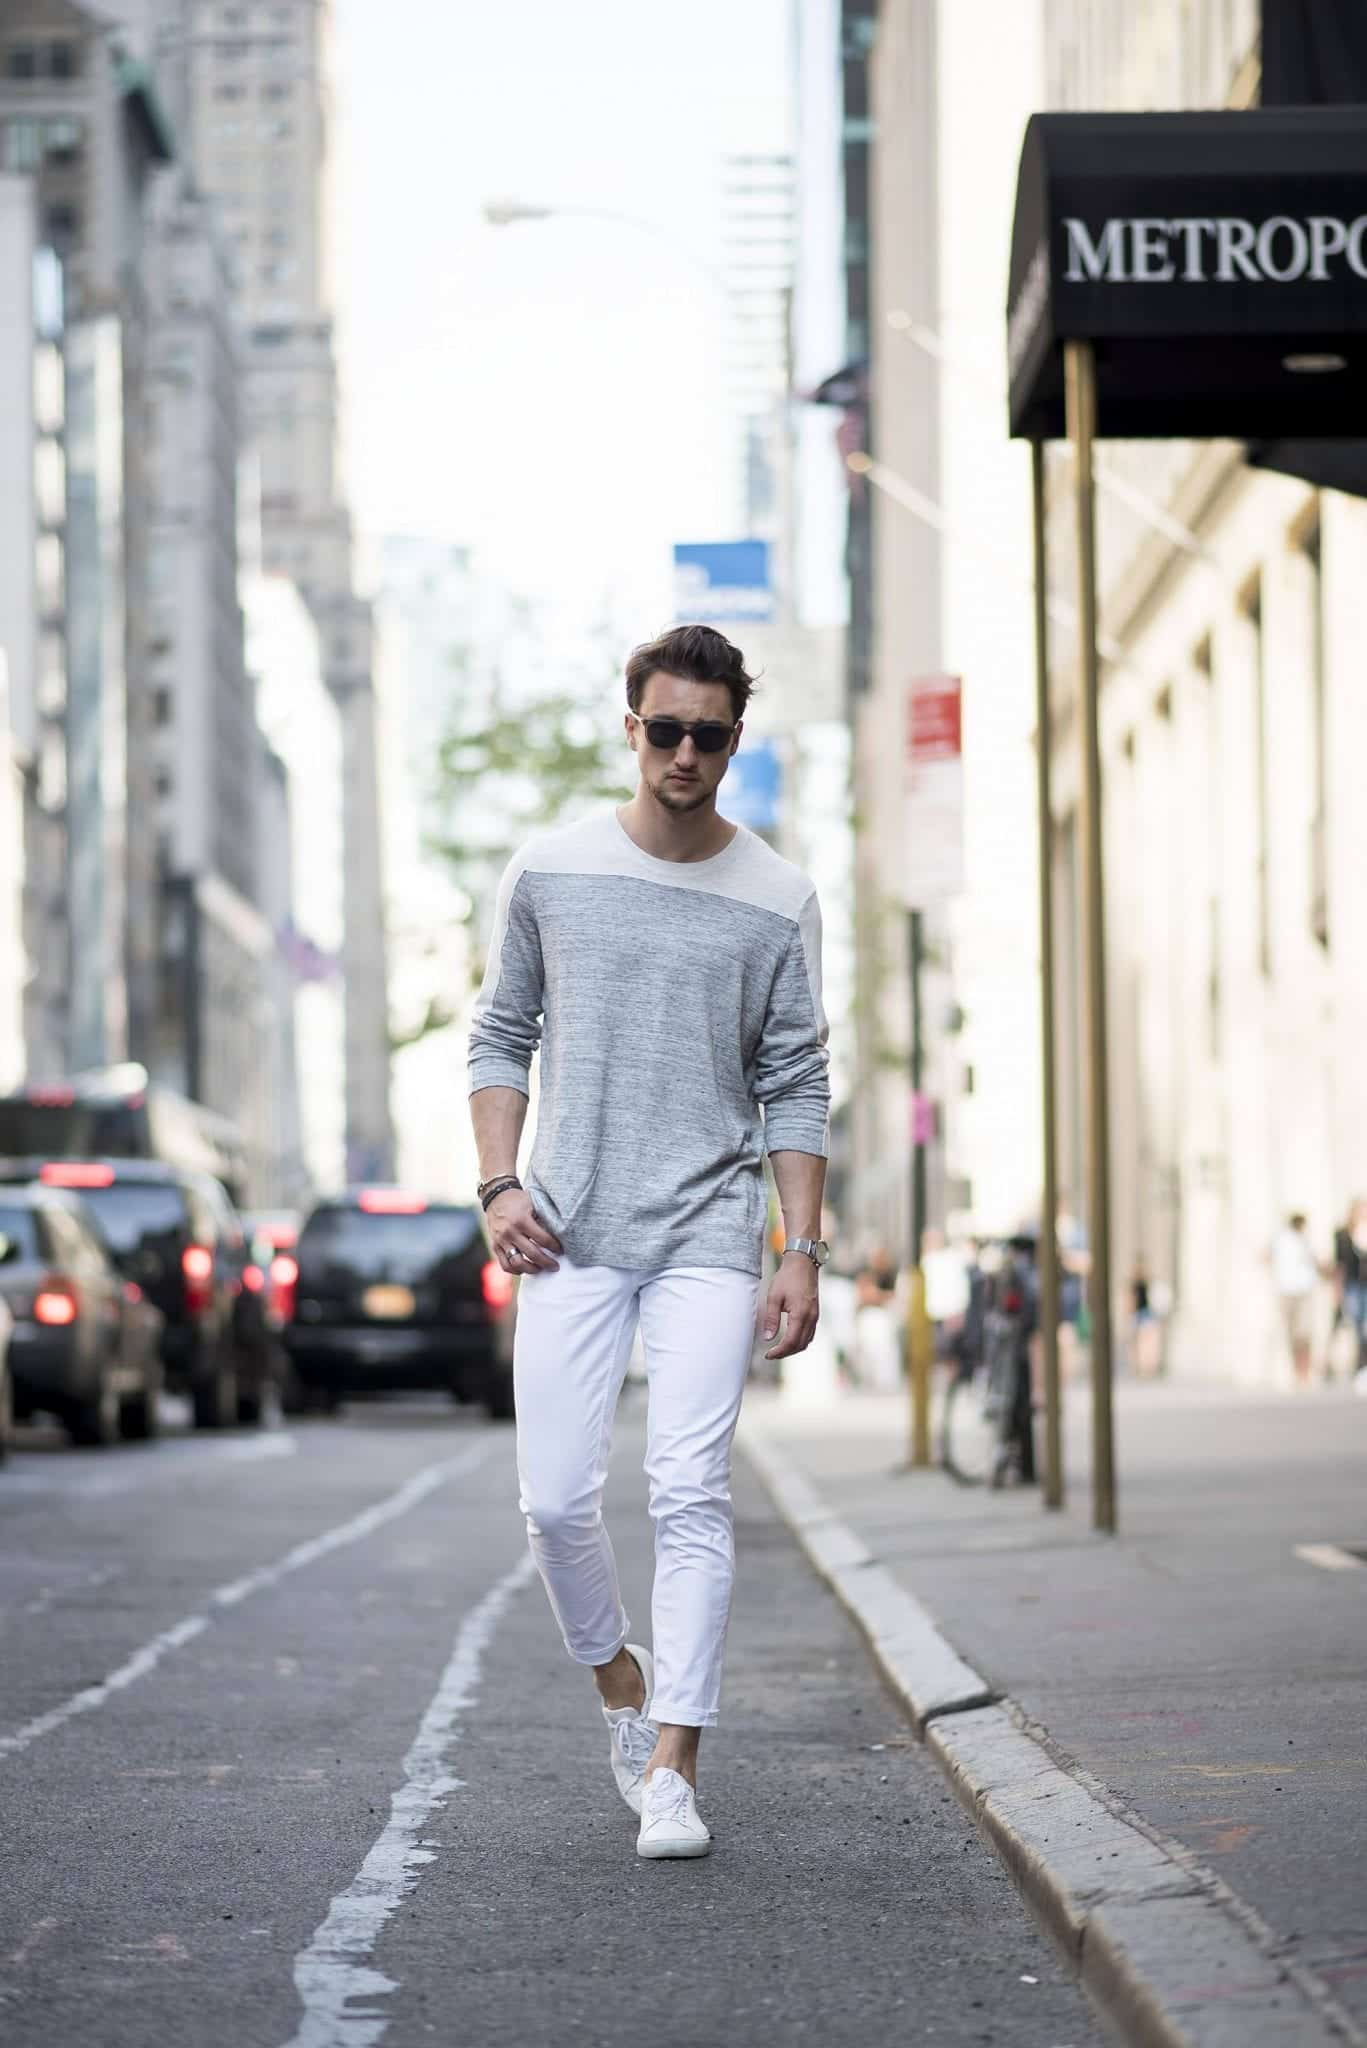 White Jean Outfits for Men-Top 25 Ideas for White Jeans Guys